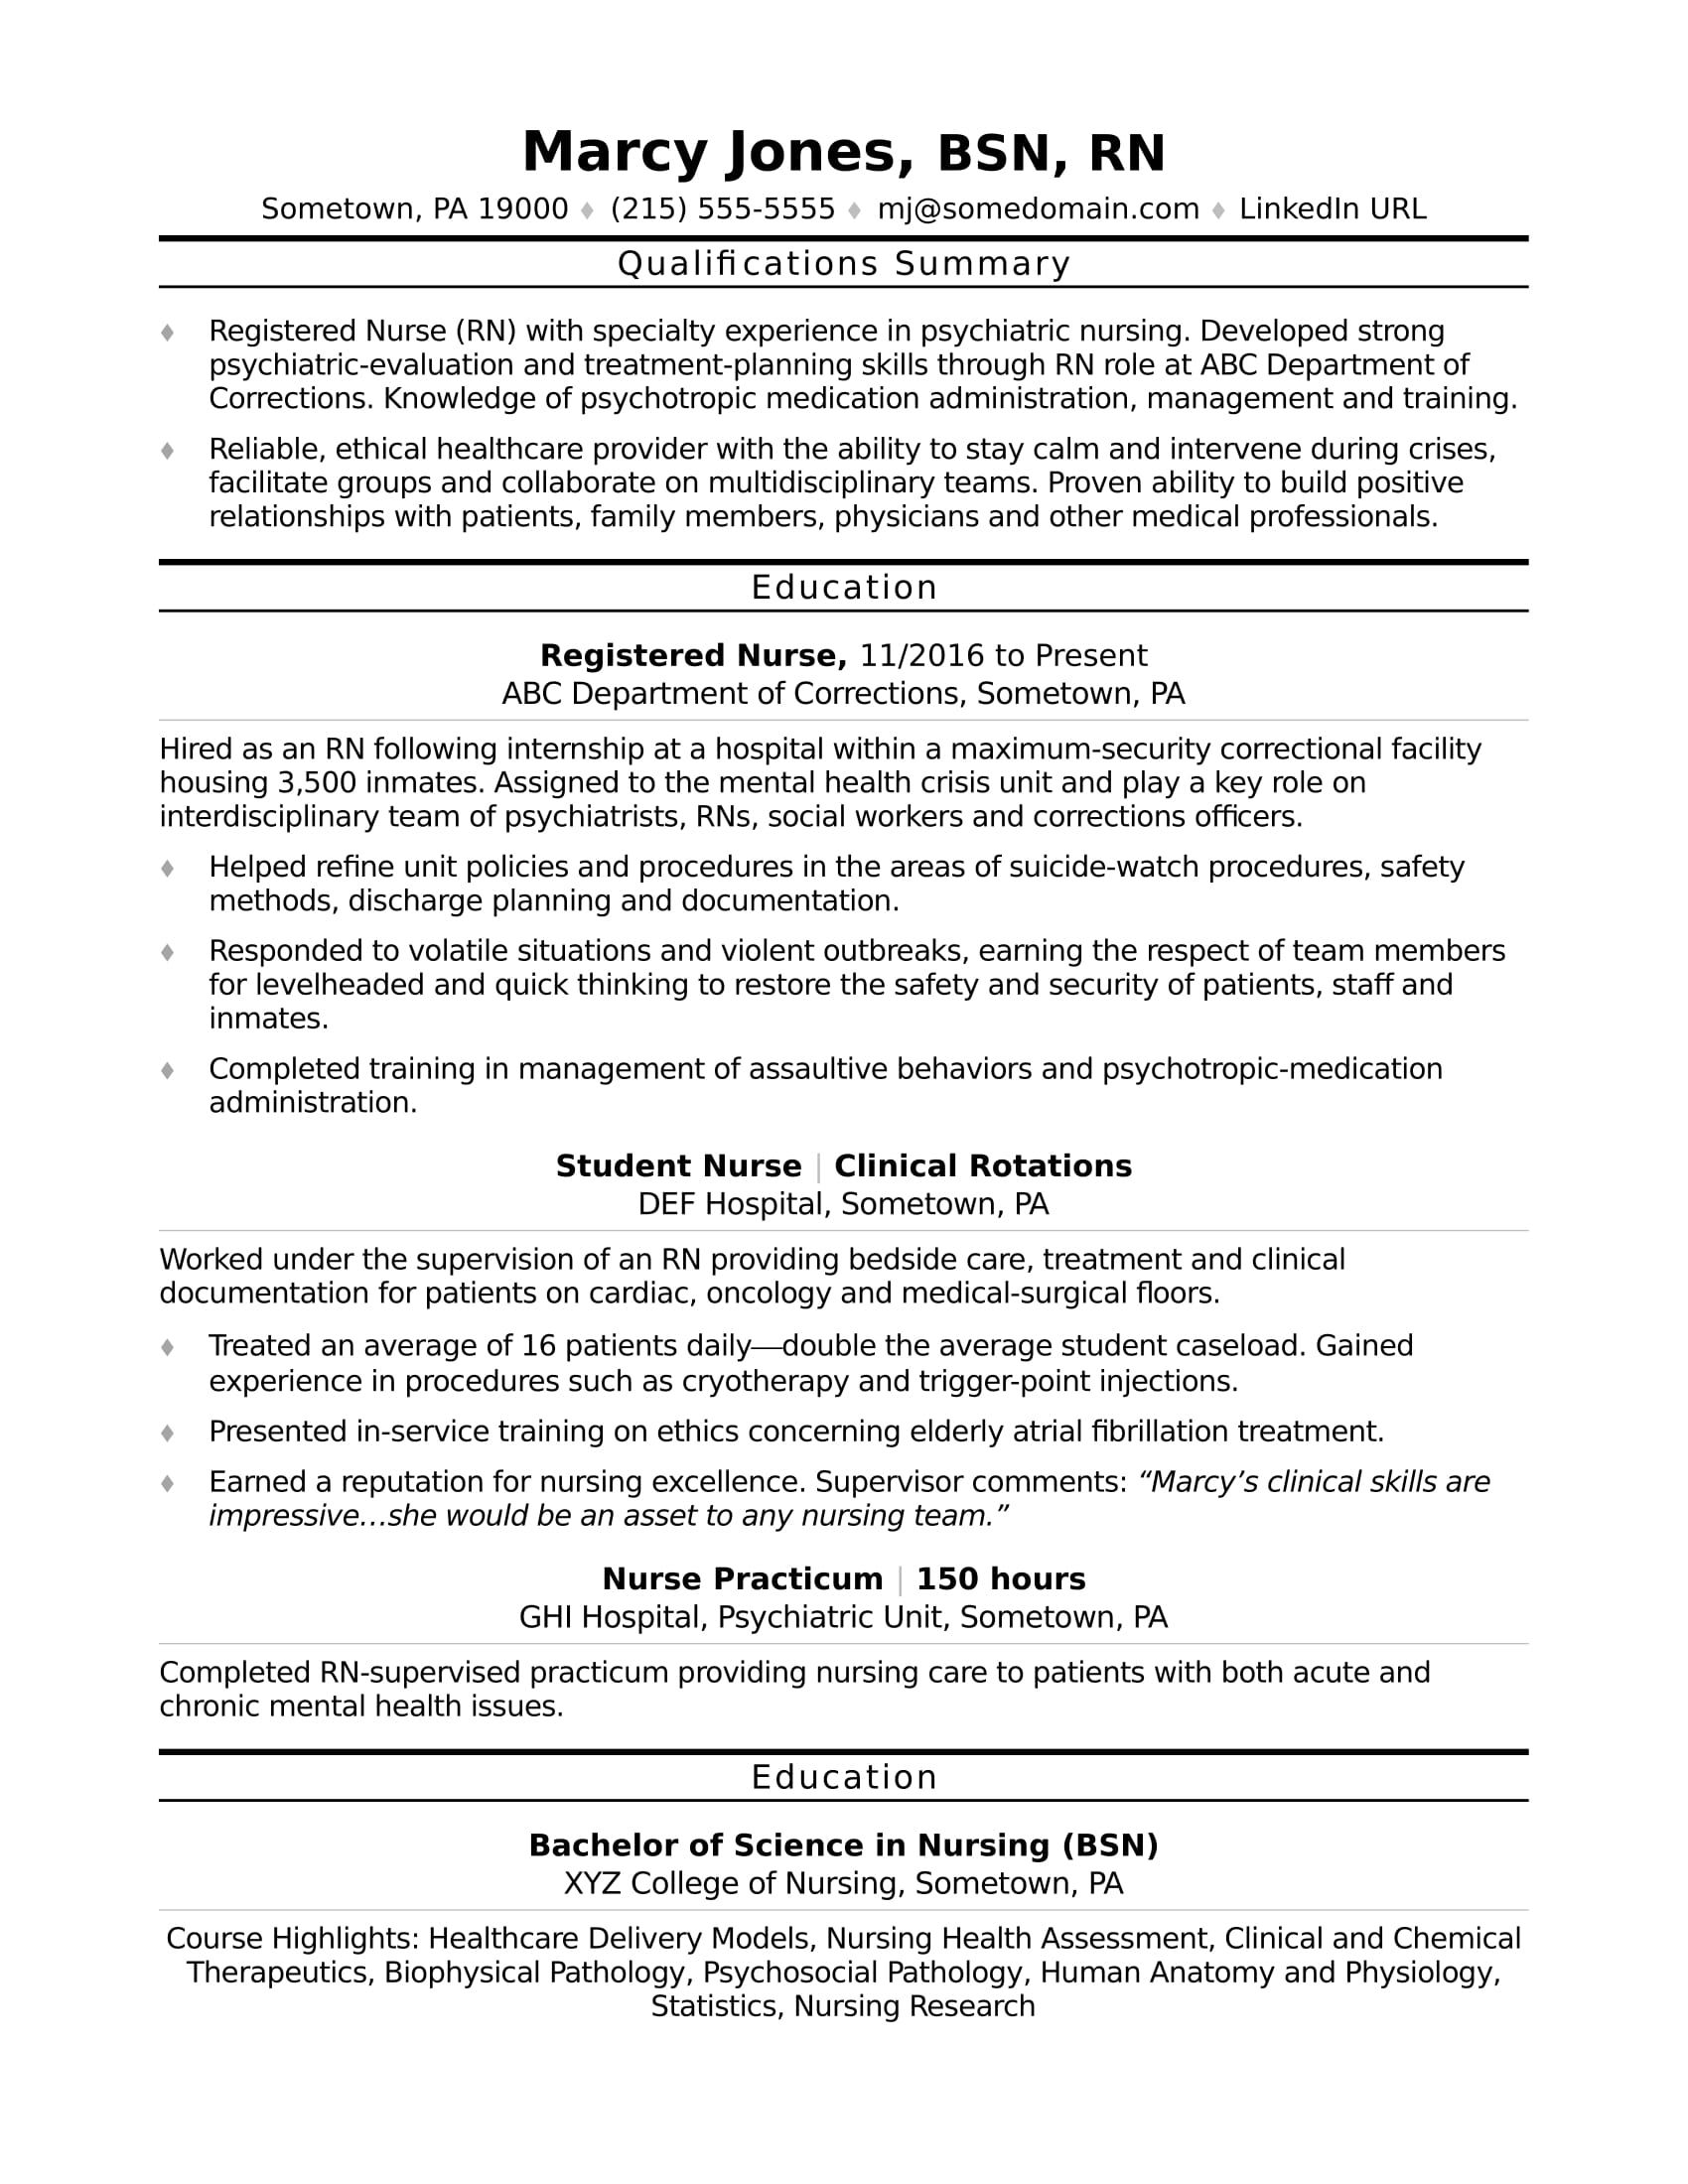 Learn How To Build A Powerful Entry Level Nurse Resume With This Free Resume Sample Nursing Resume Examples Nursing Resume Template Registered Nurse Resume